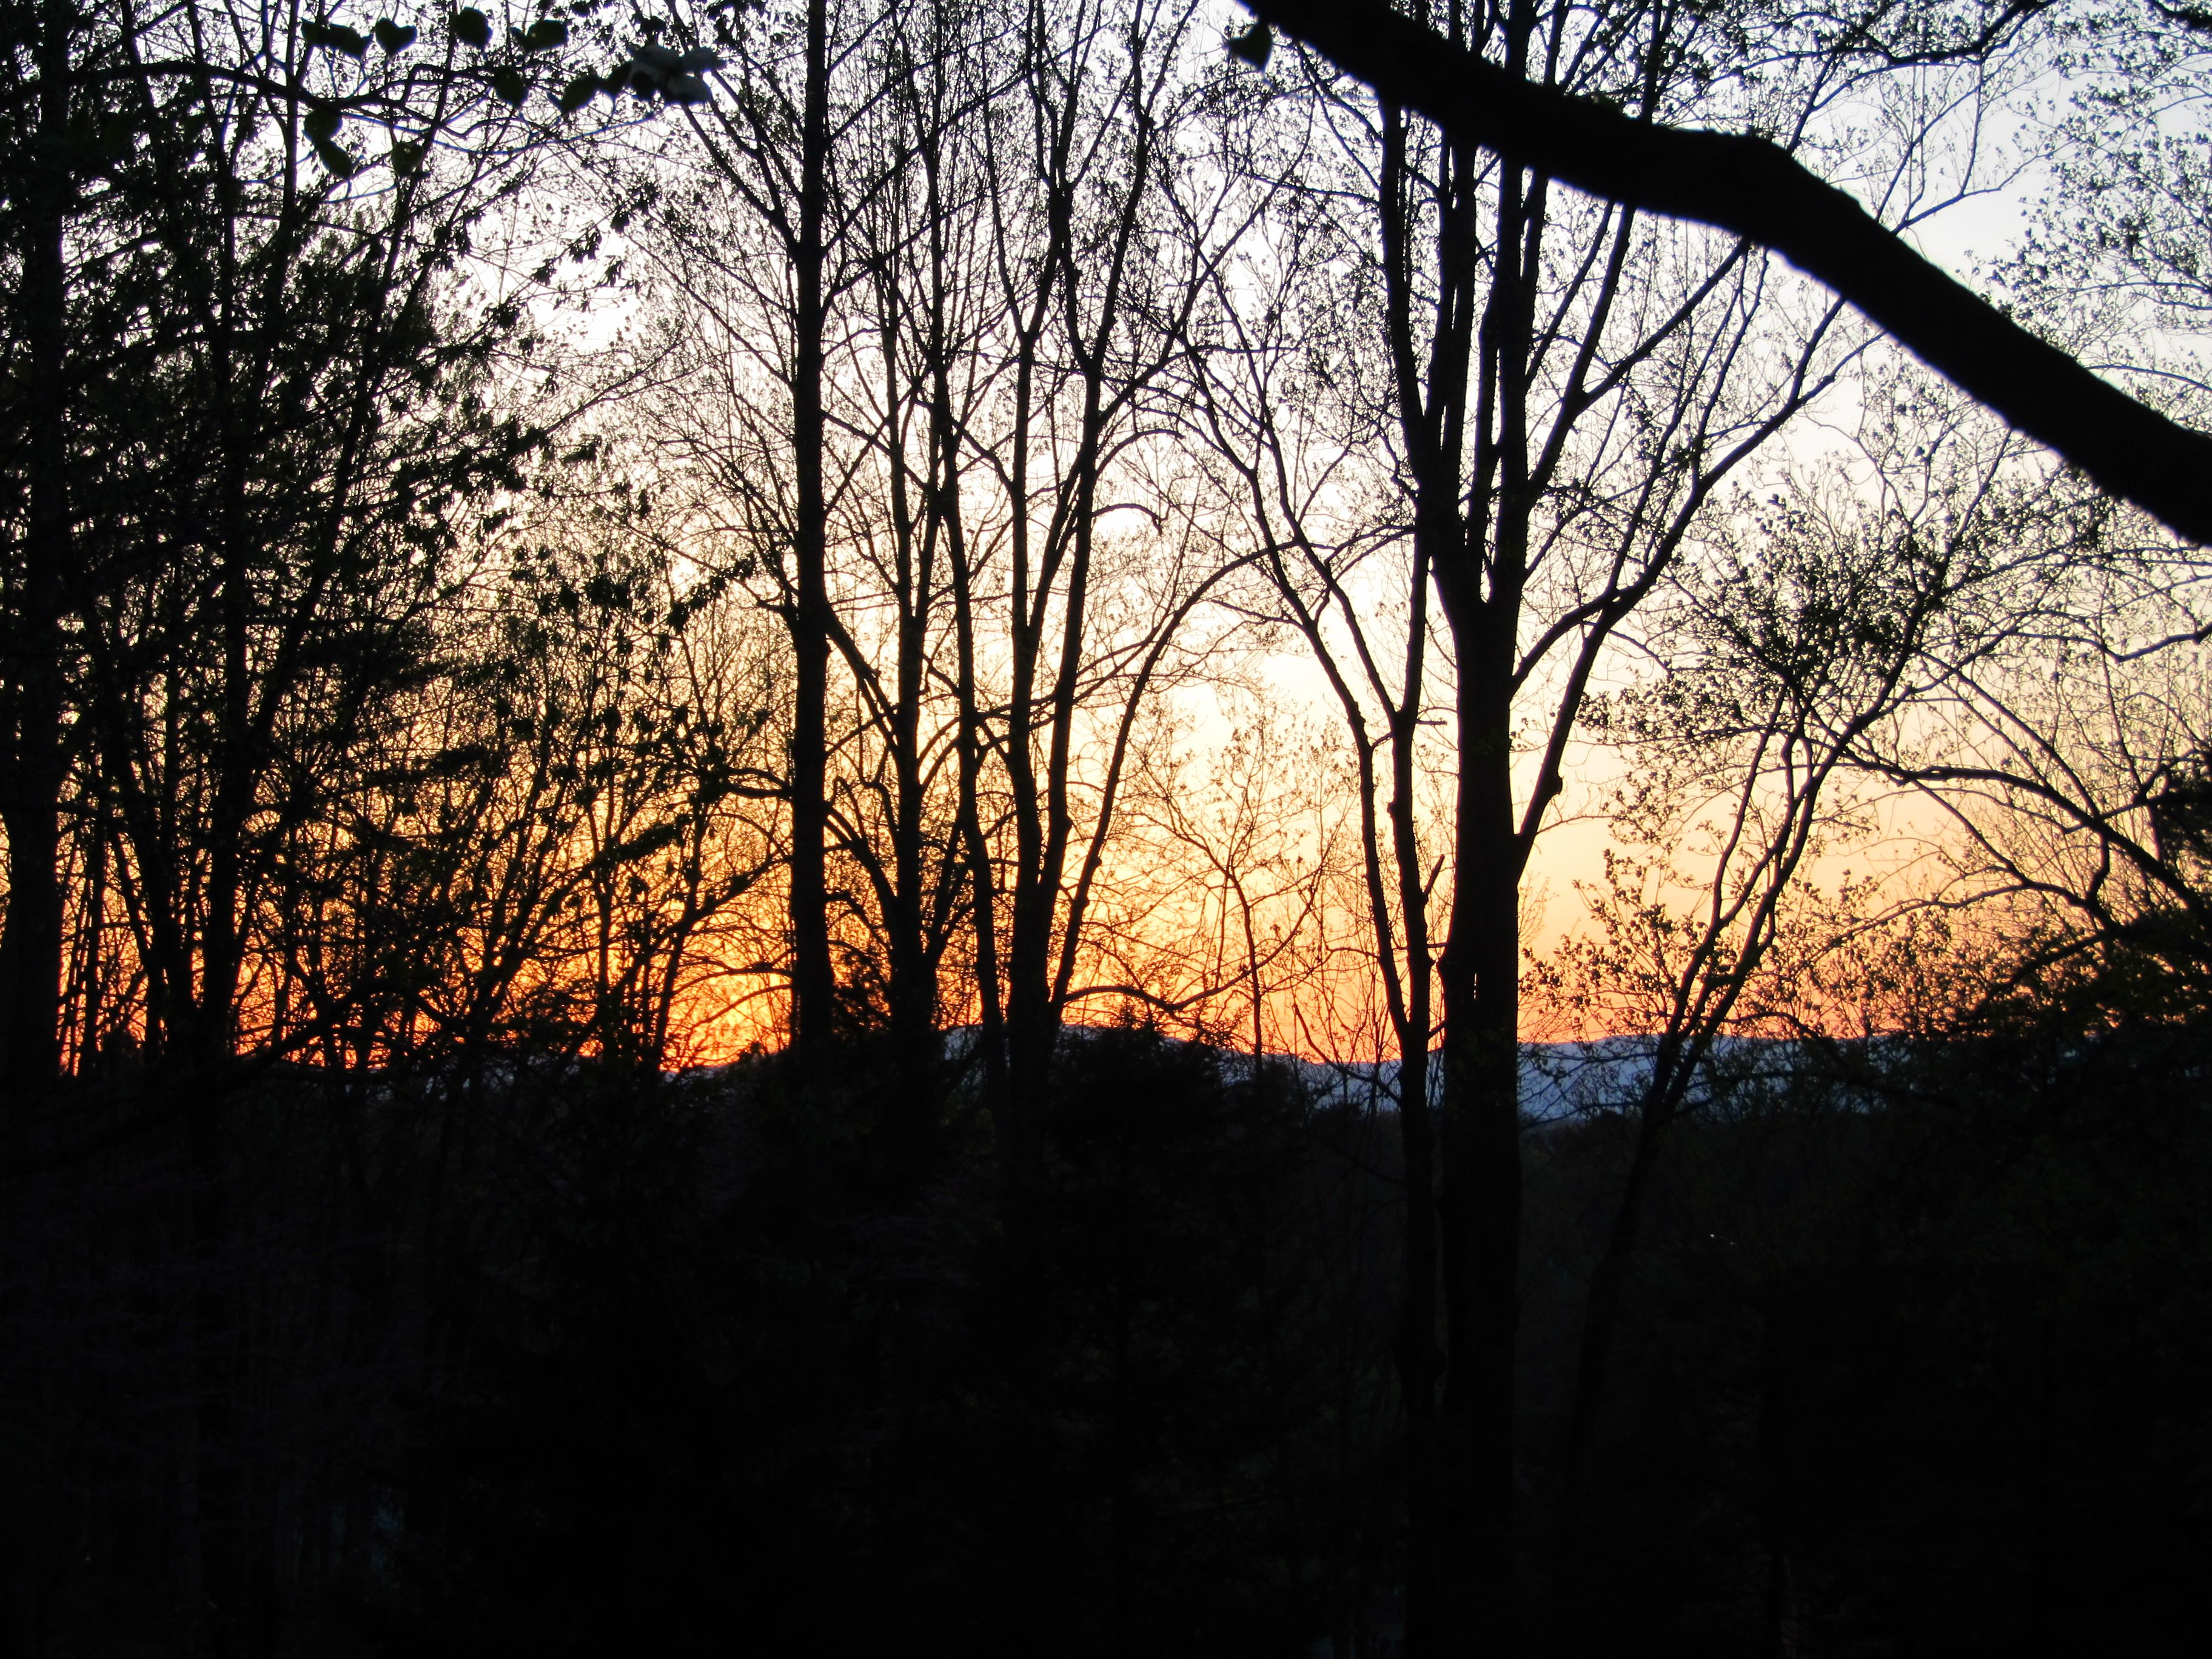 Sunset through the trees looking toward the Blue Ridge Mtns. Photo by Carol Greene